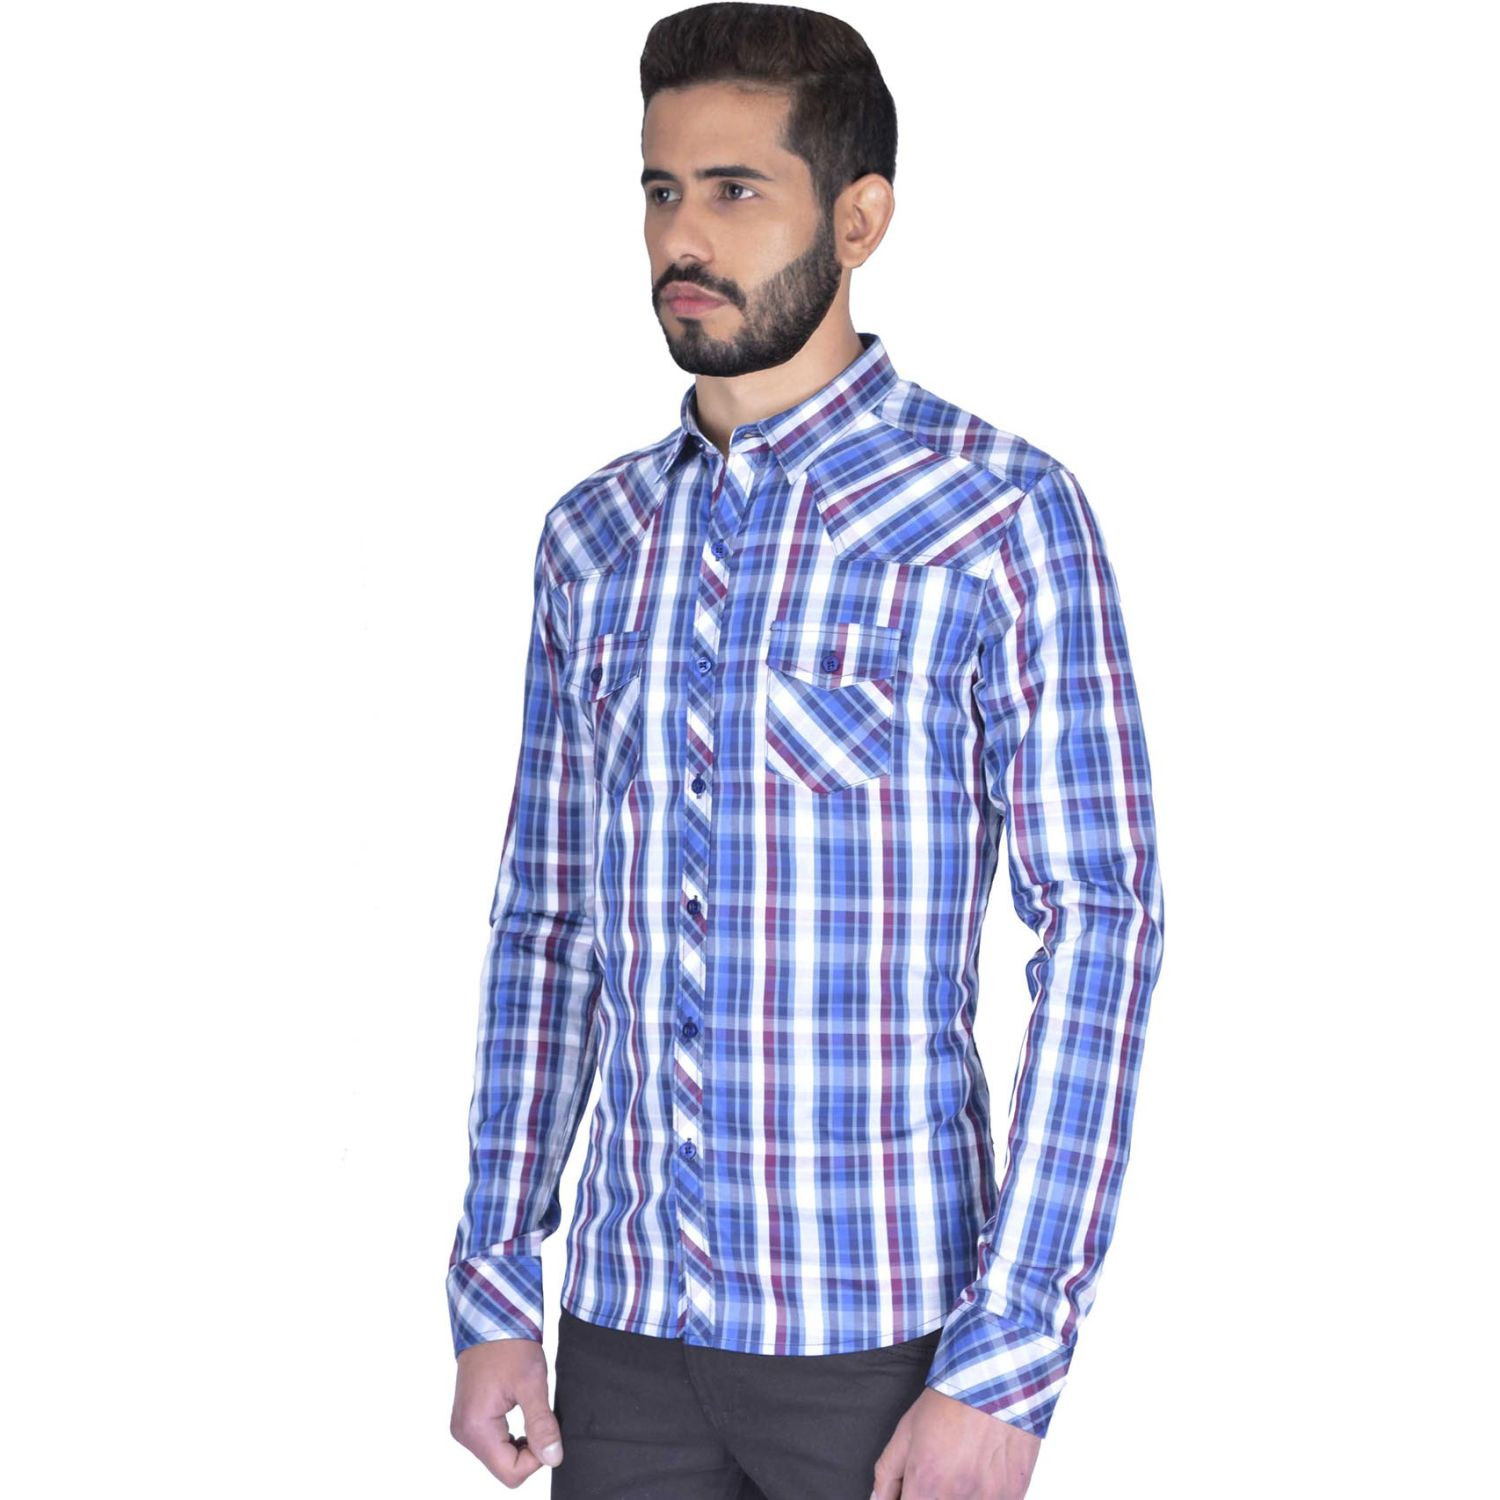 The Cult Camisa Manga Larga, Perfect Fit Azul Camisas de botones